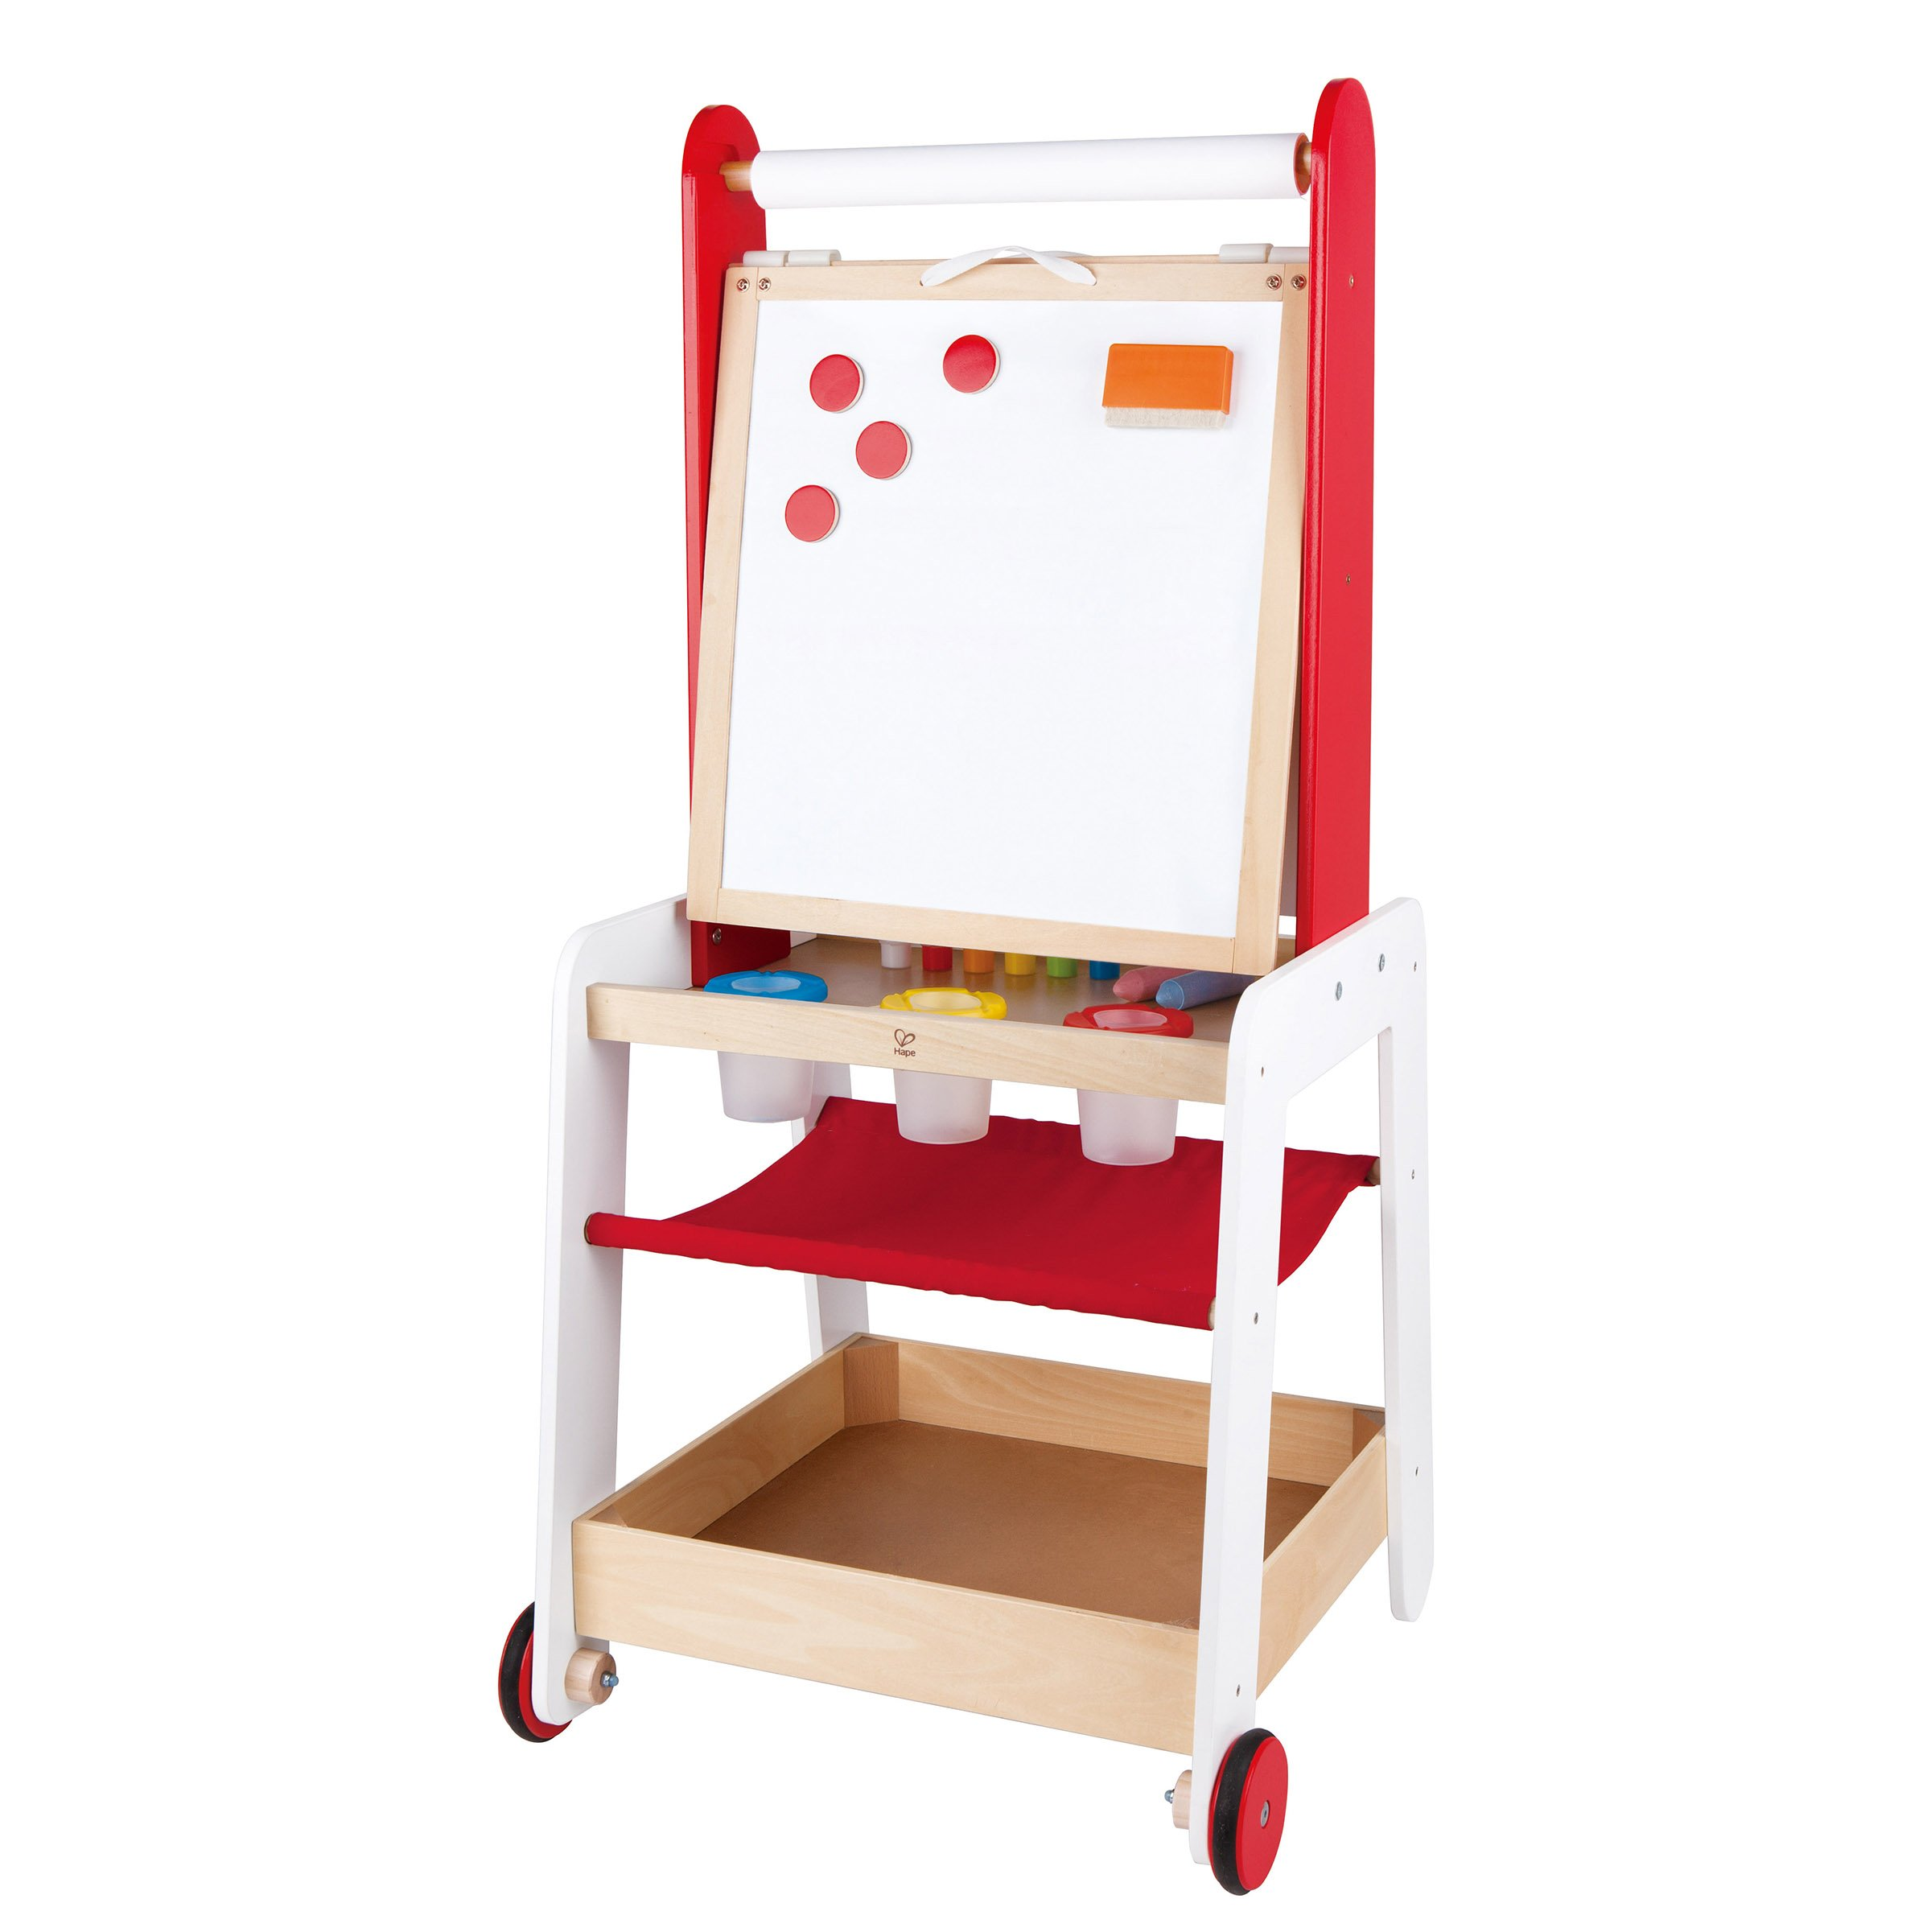 Hape Kids Create and Display Adjustable Wooden Art Easel with Storage